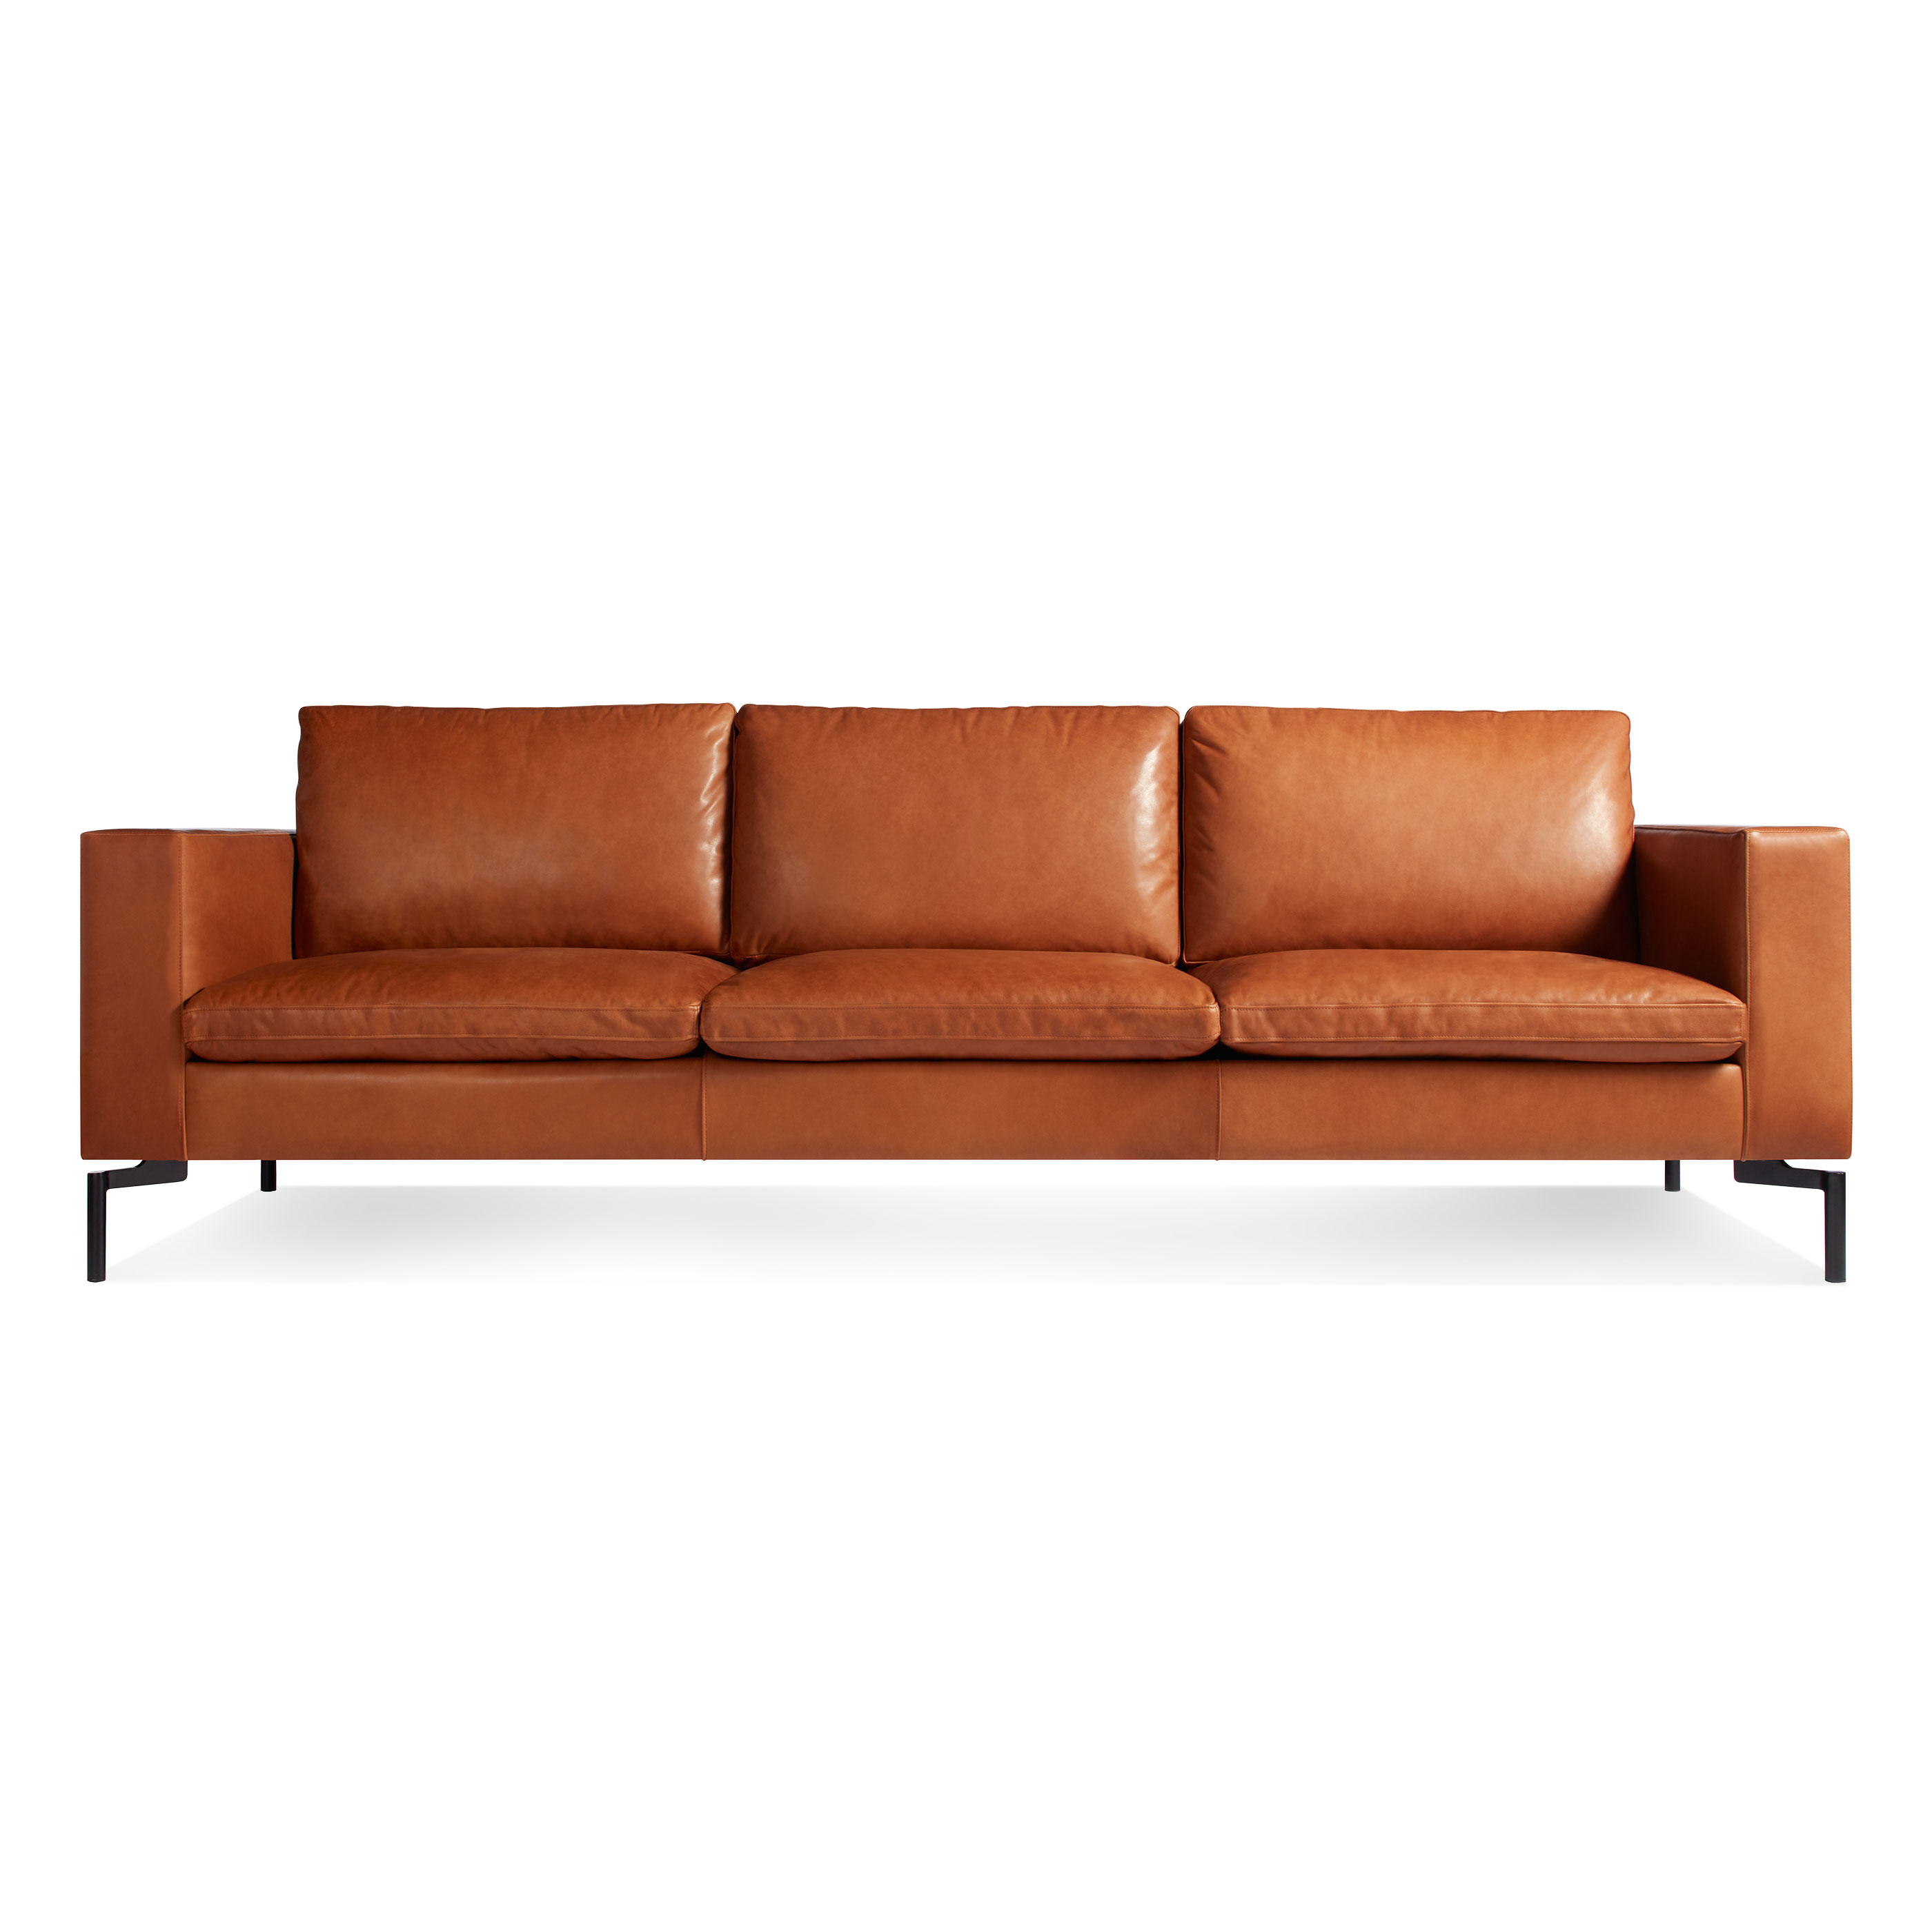 new modern couches previous image new standard modern black leather sofa ... OCFAQHE